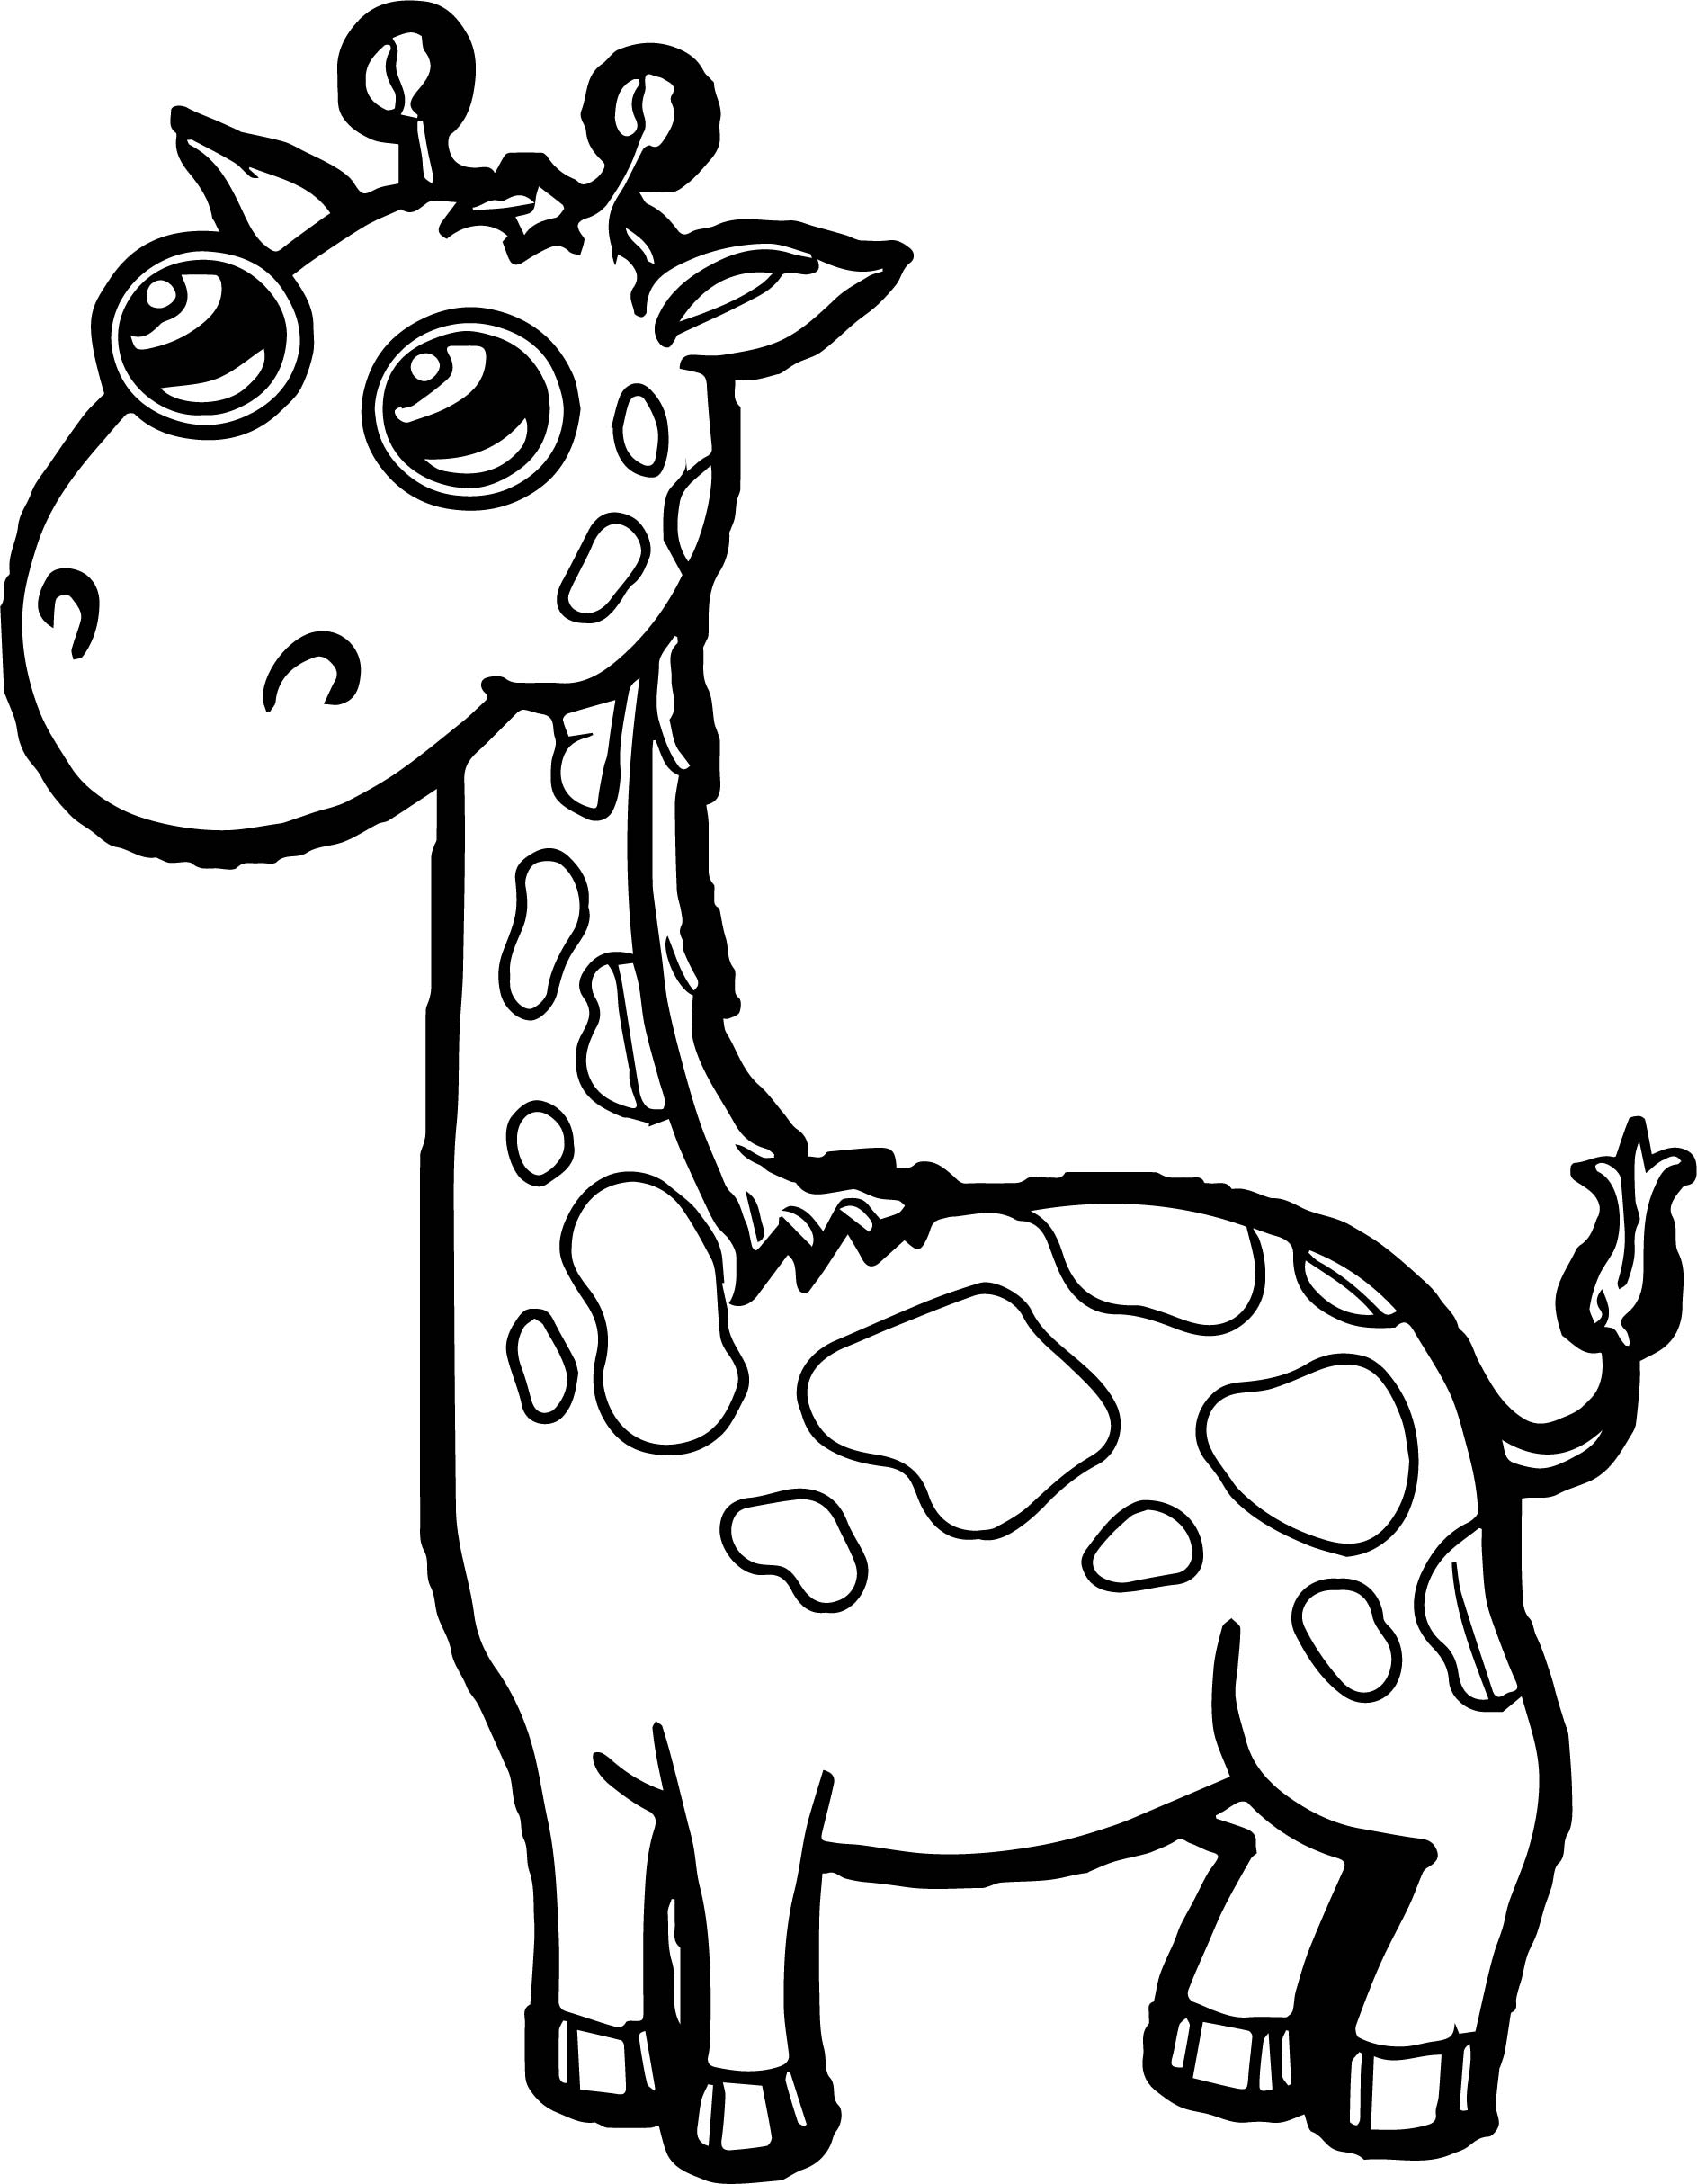 Giraffe Eye Shine Coloring Page